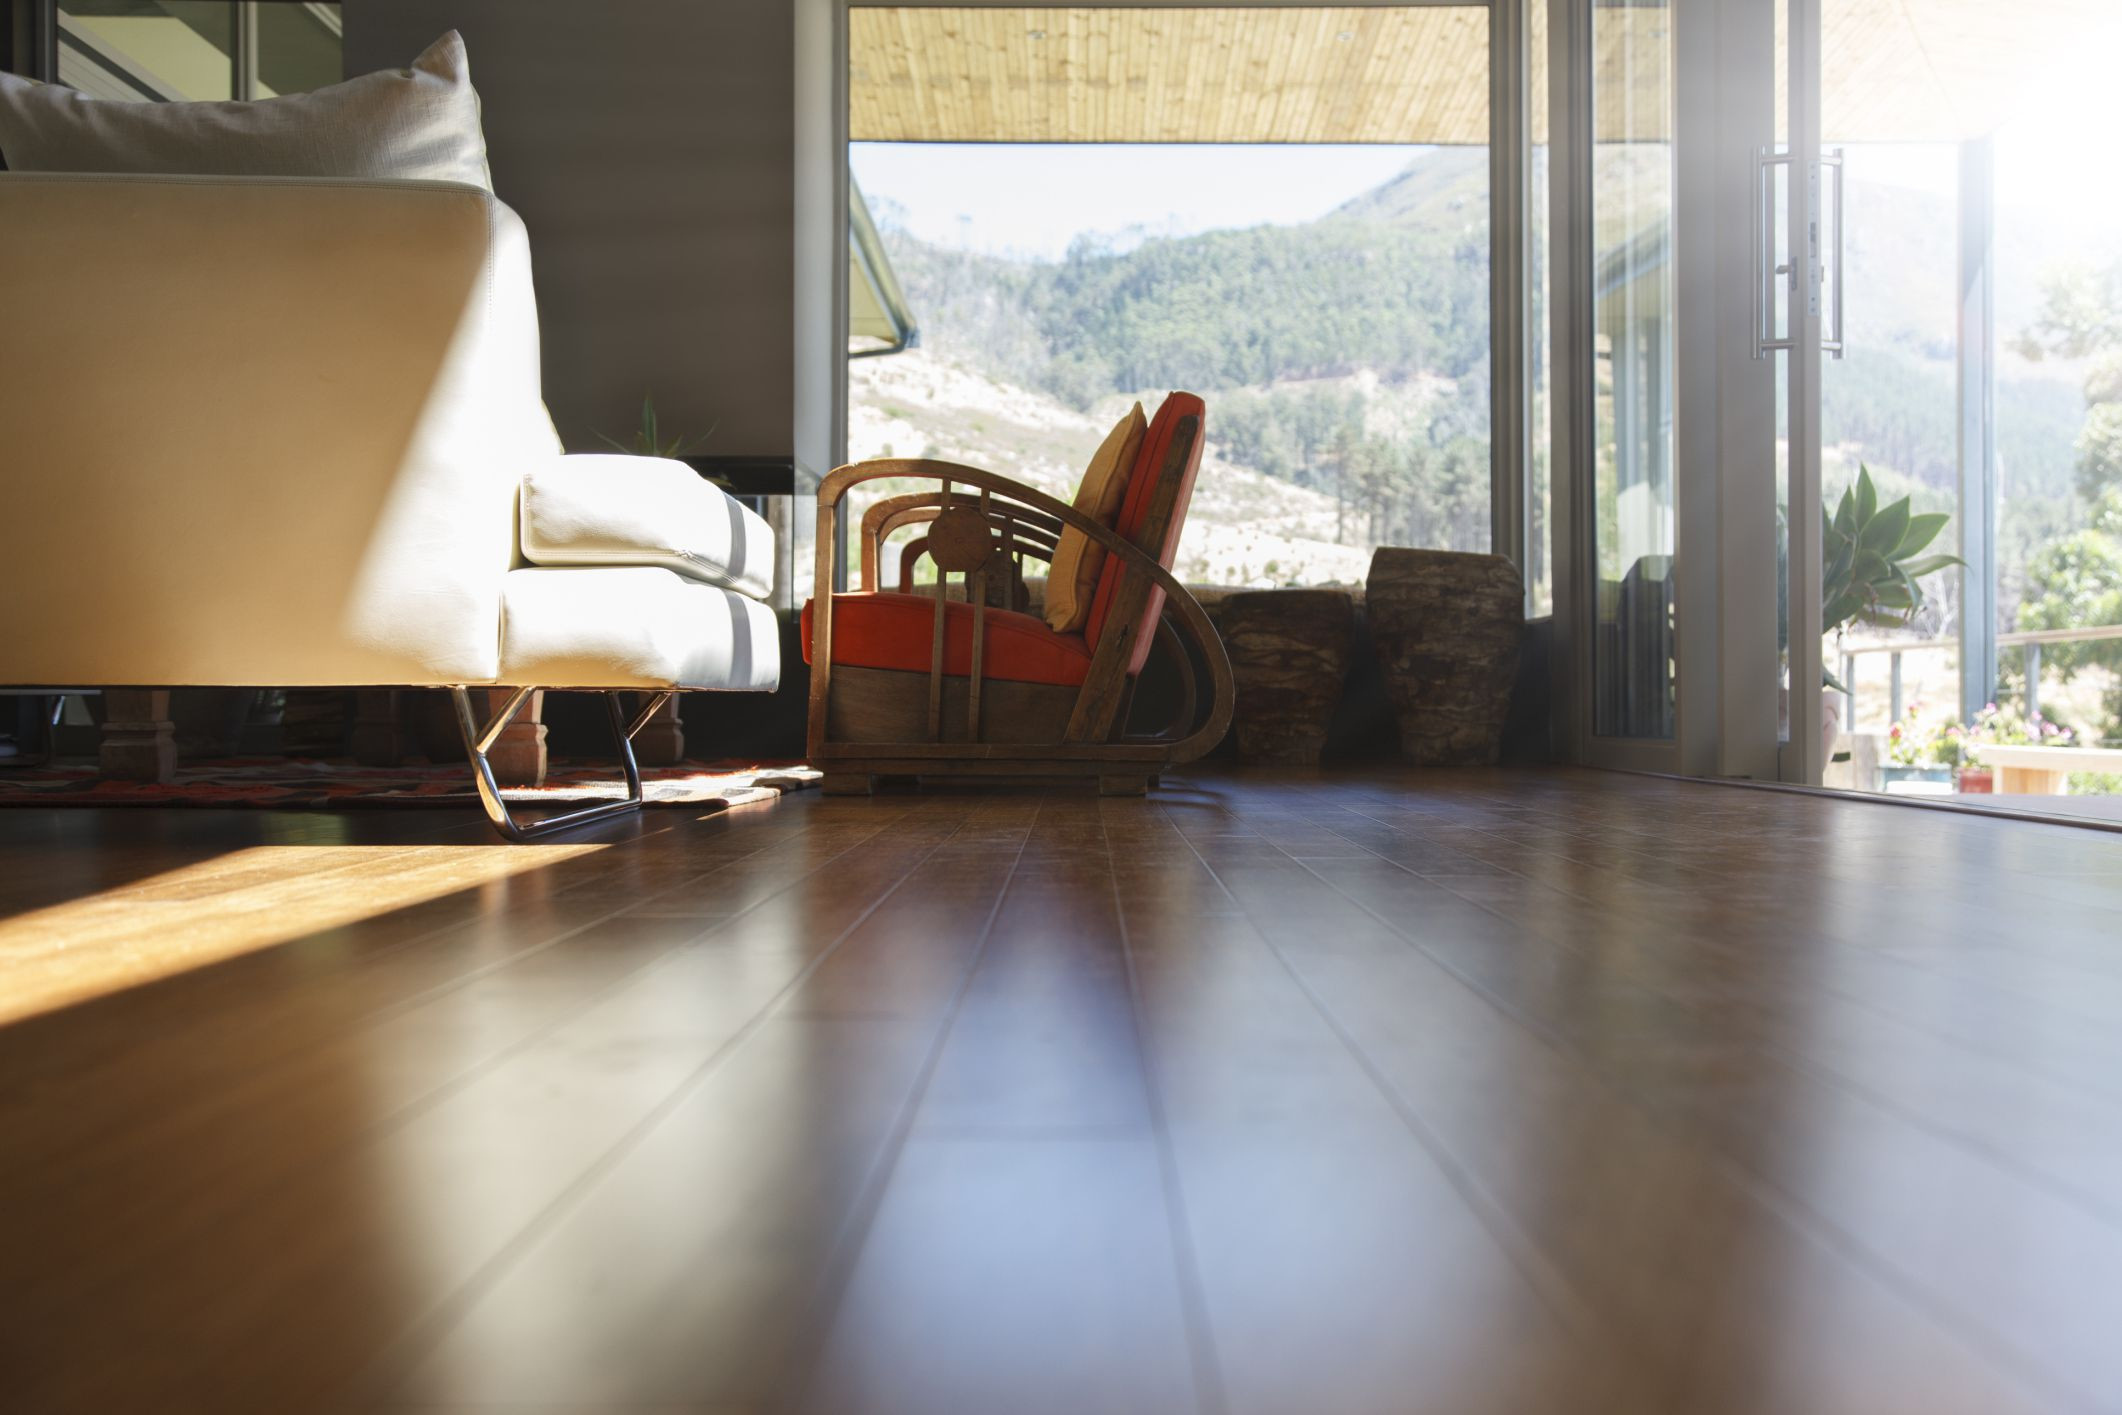 all pro hardwood flooring of floating floors basics types and pros and cons for exotic hardwood flooring 525439899 56a49d3a3df78cf77283453d